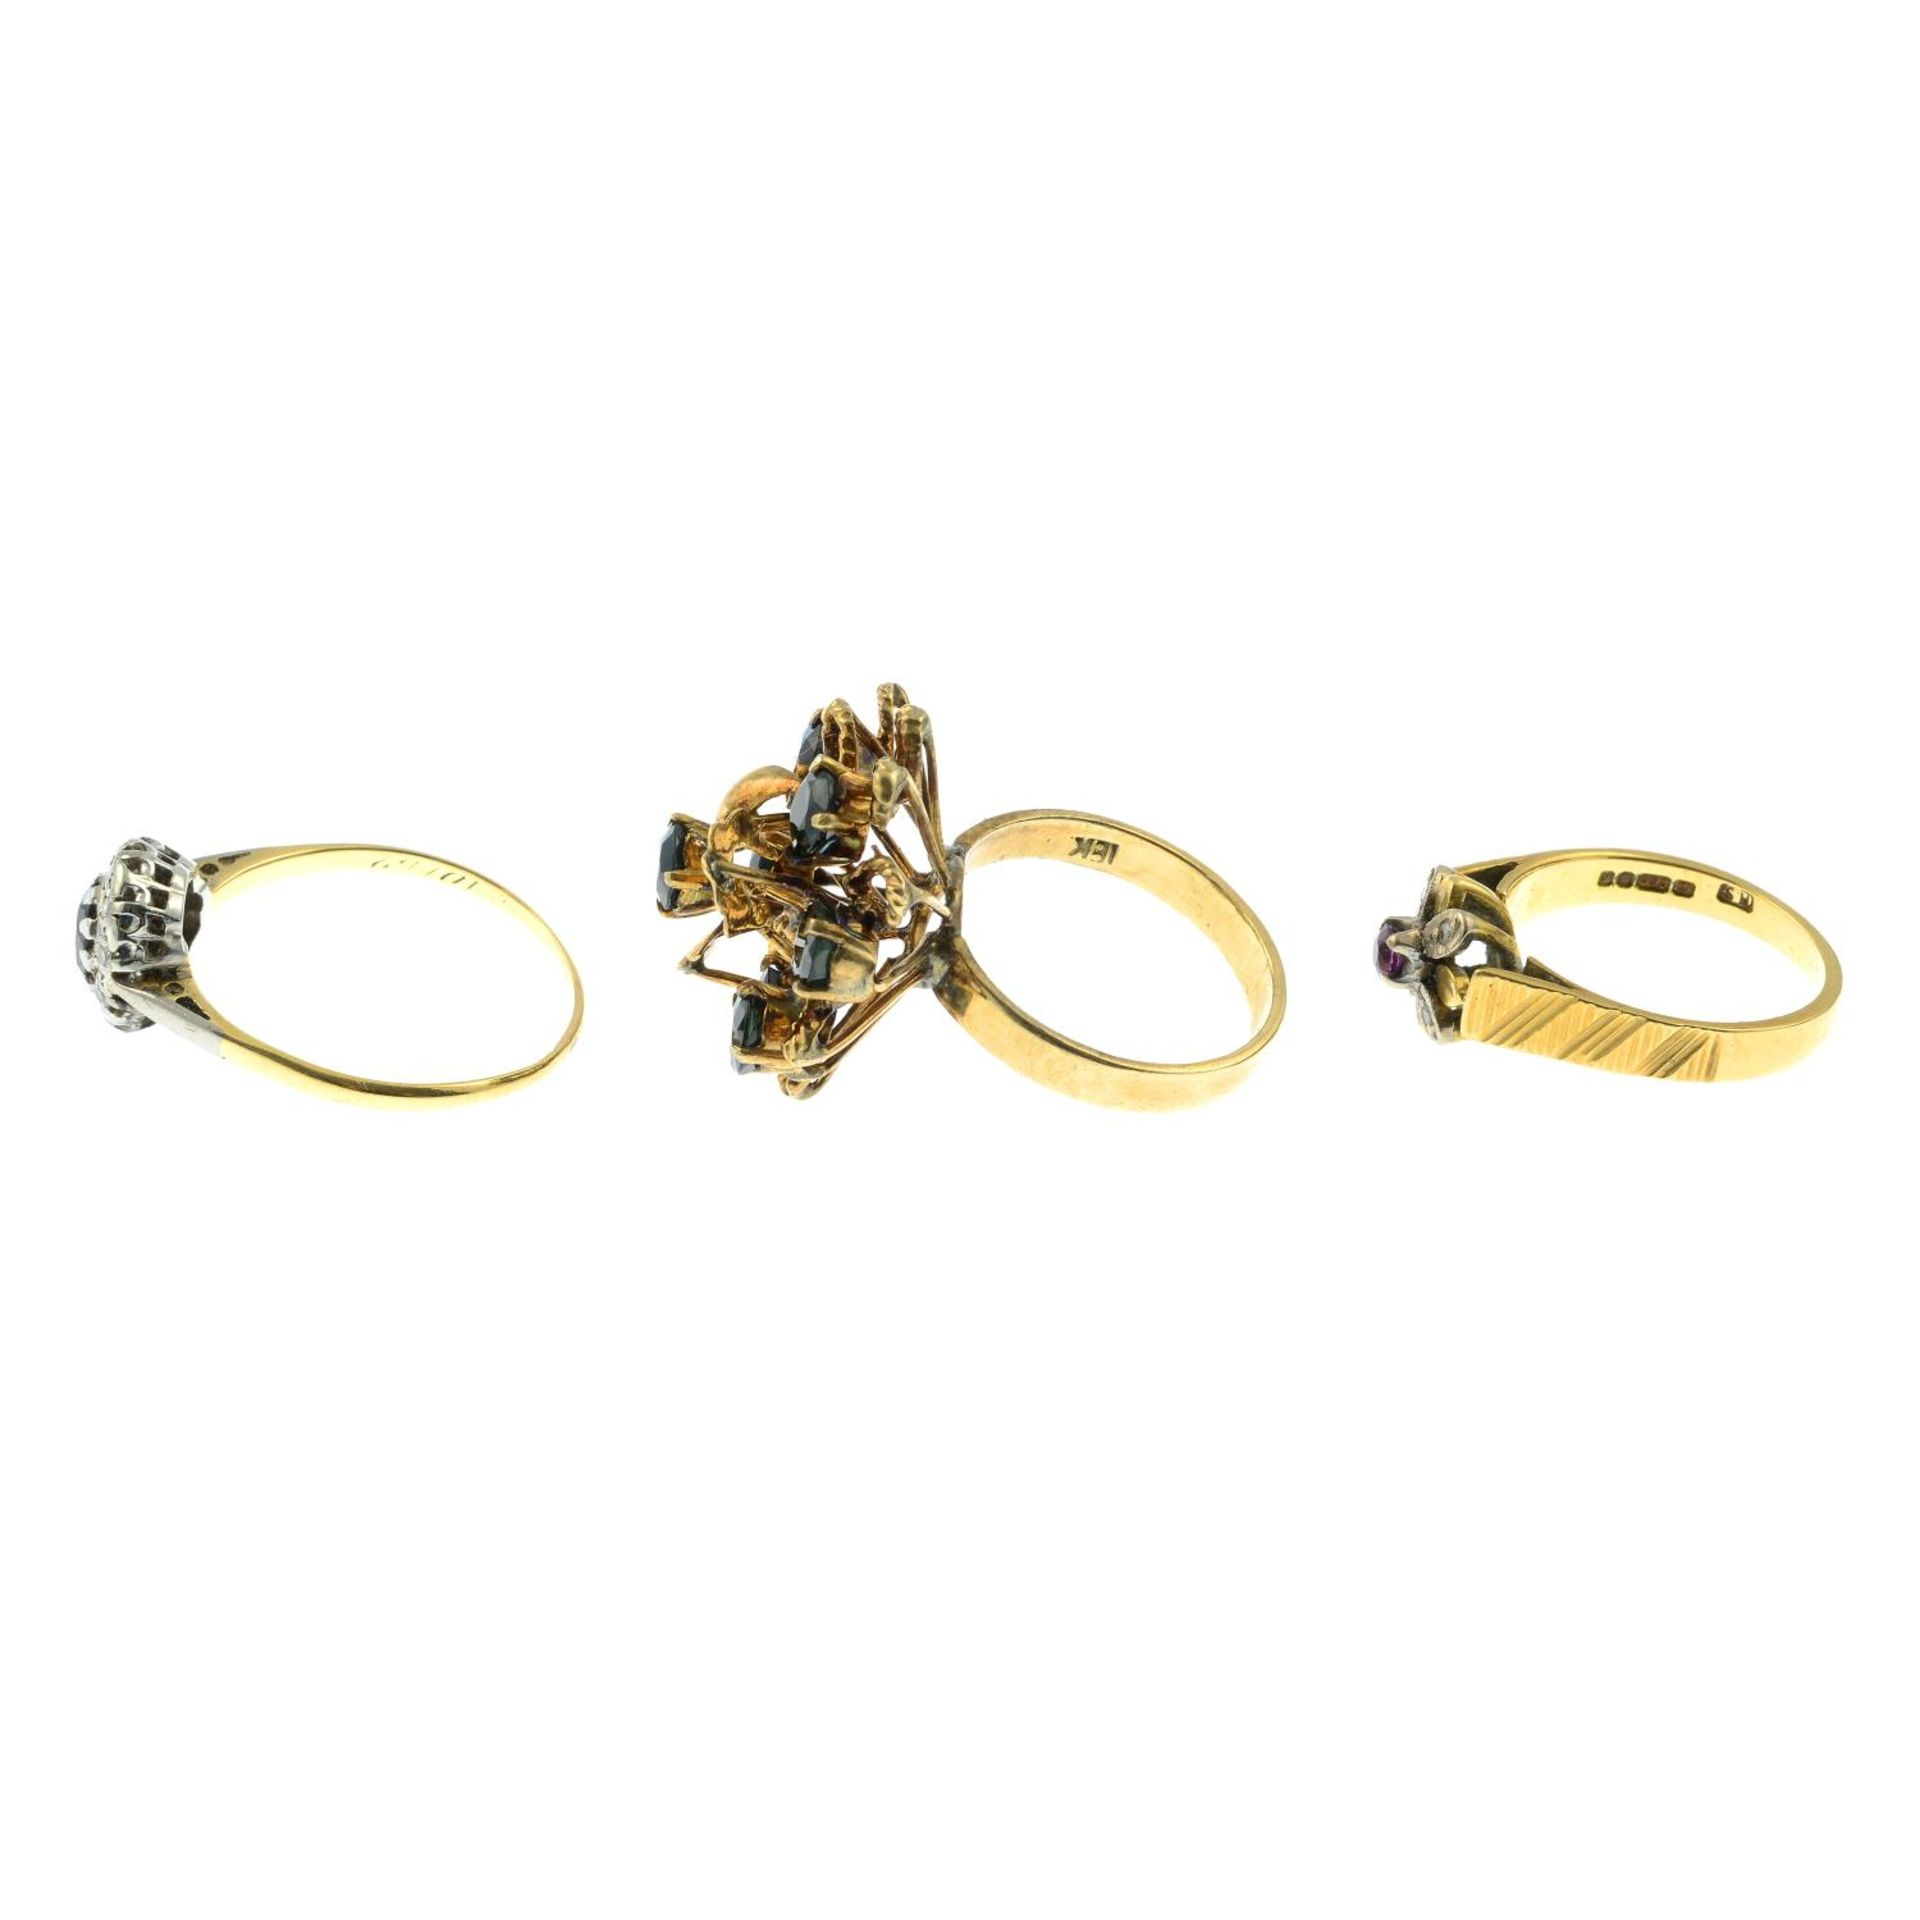 18ct gold diamond and ruby floral cluster ring, - Bild 2 aus 3